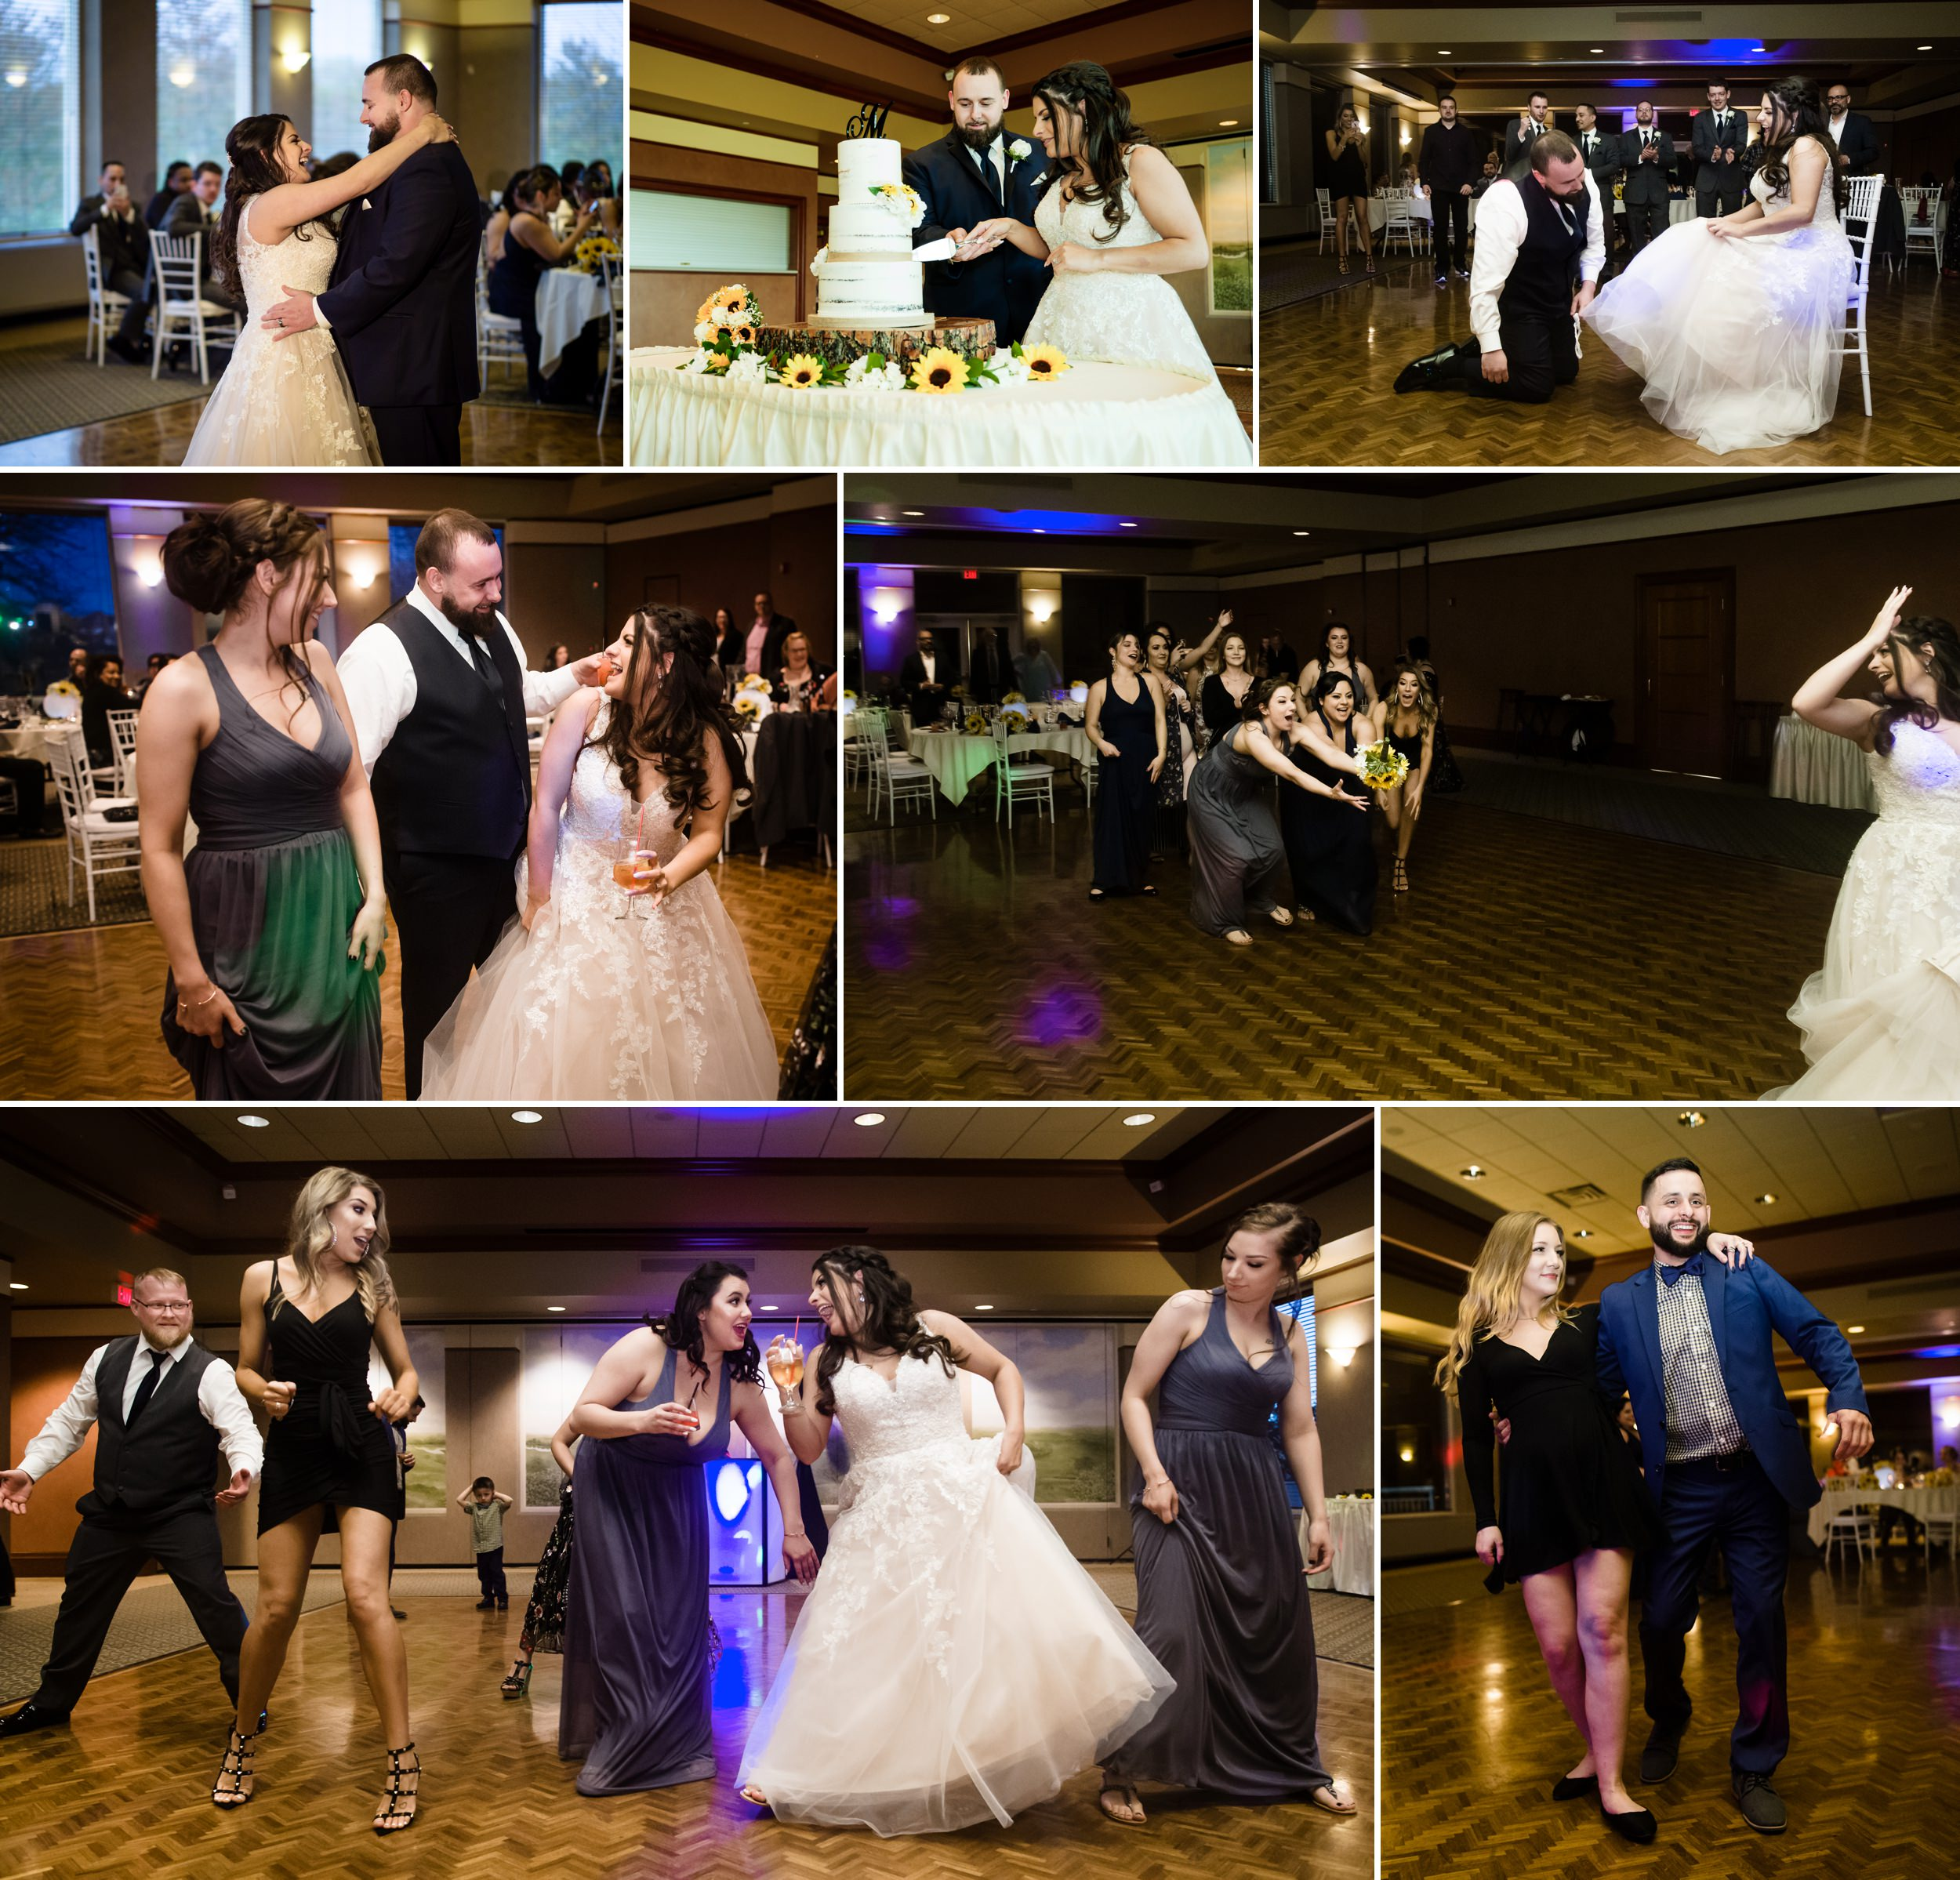 A wedding celebration inside the Sand Creek ballroom.